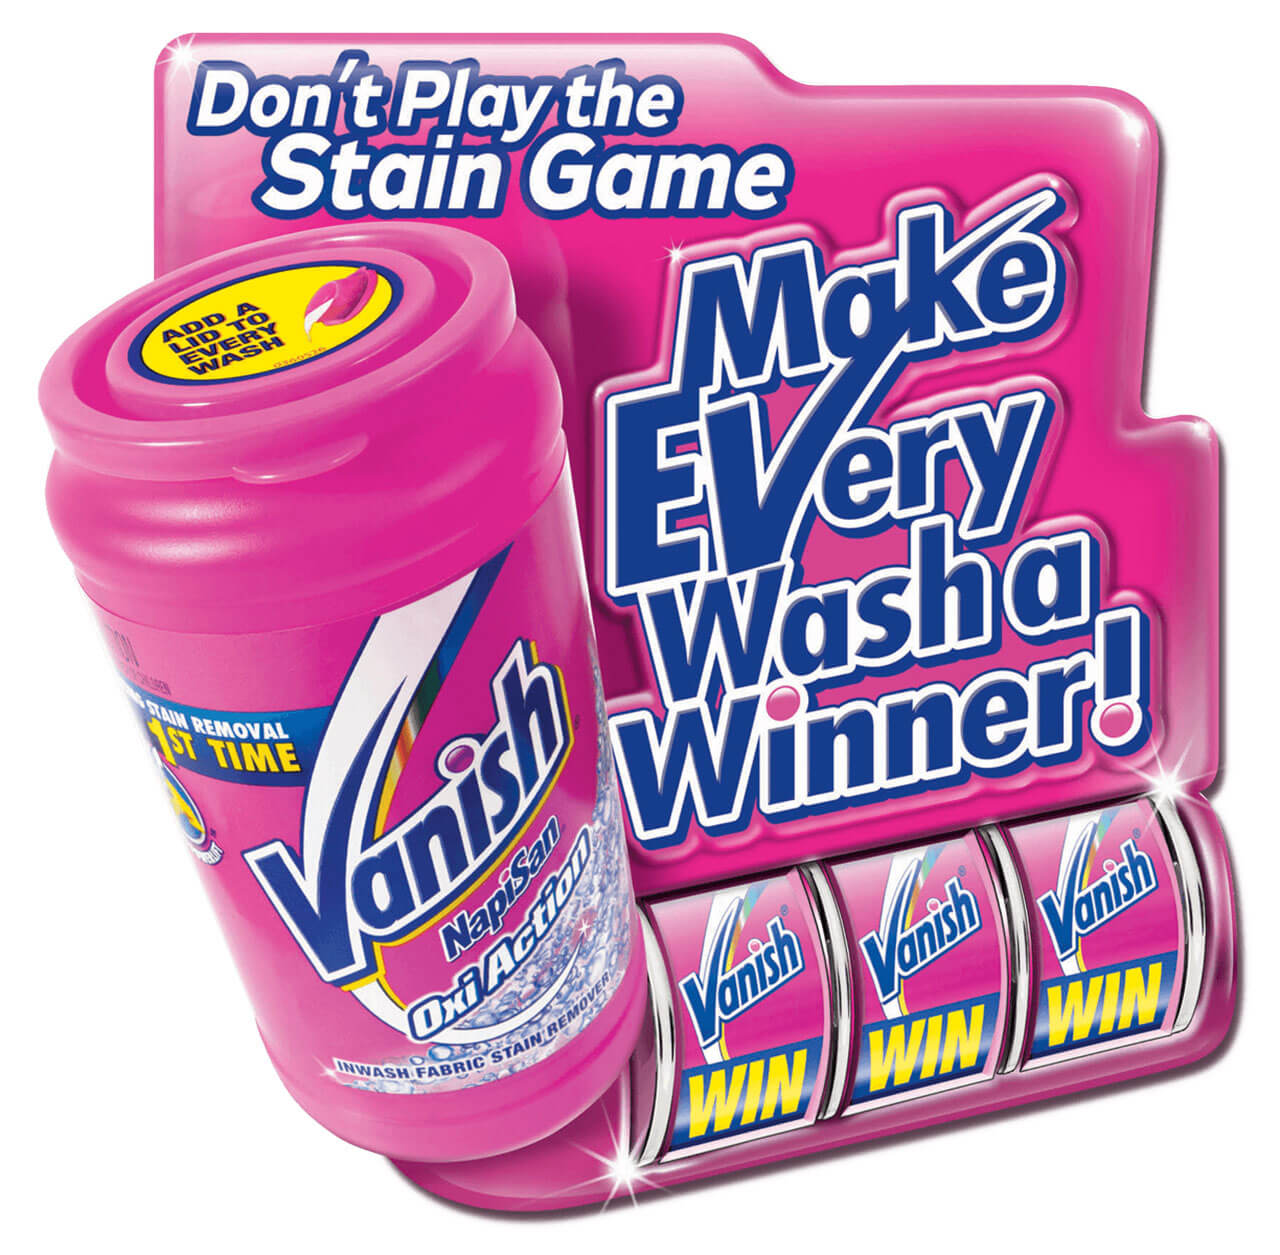 every wash a winner image